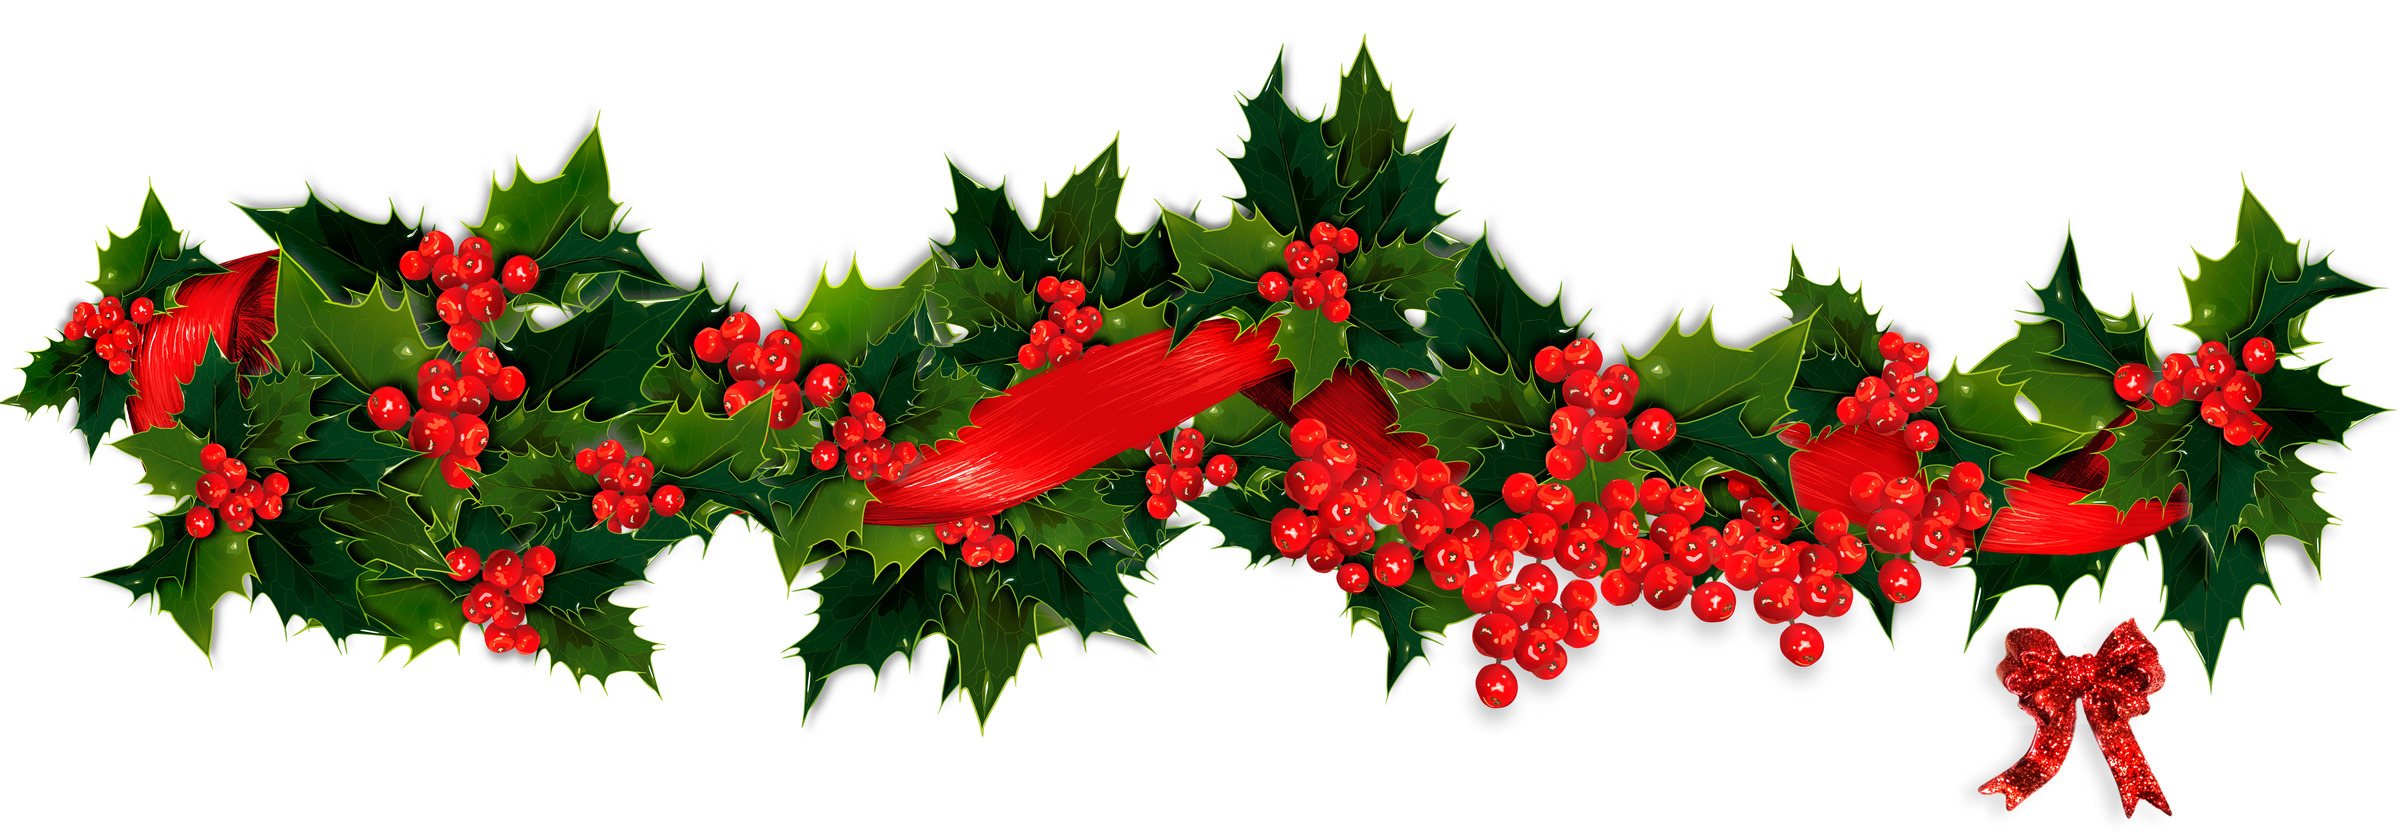 Wreath Clipart Free Download Best Wreath Clipart On